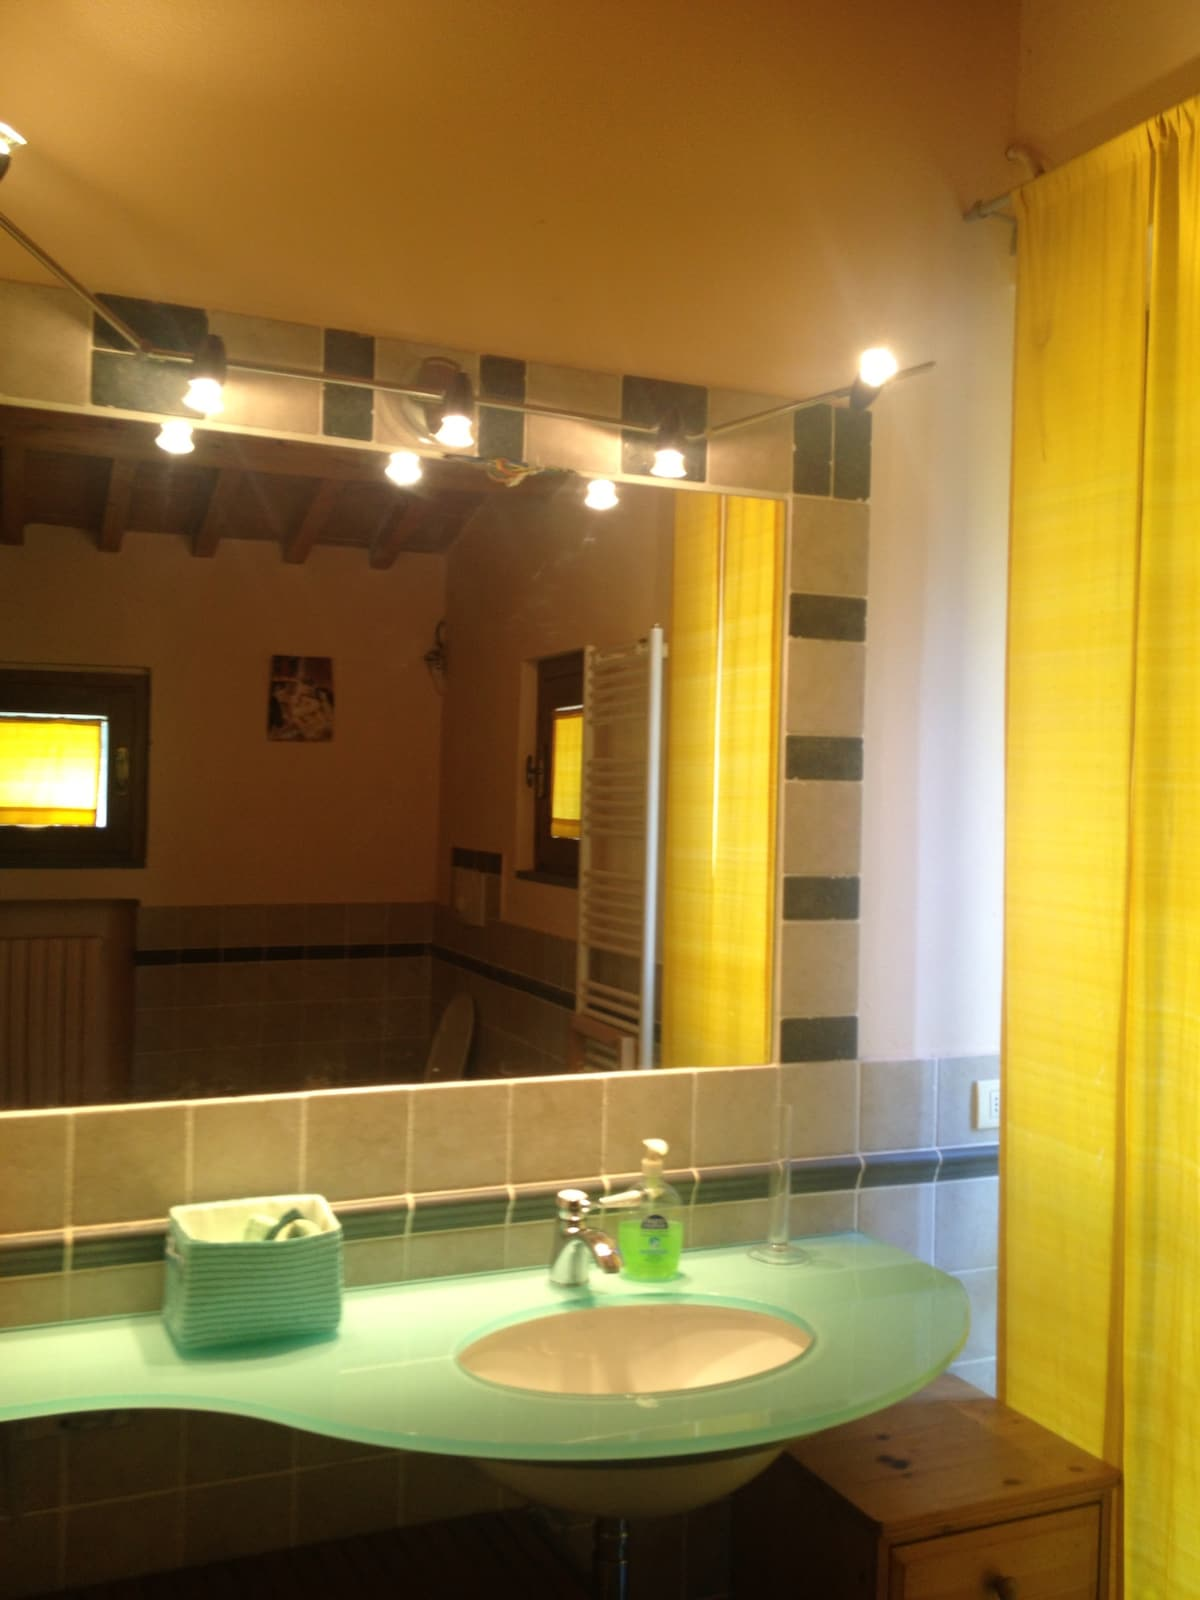 the bathroom, very charming and colorful. quite big, has got a mini pool.